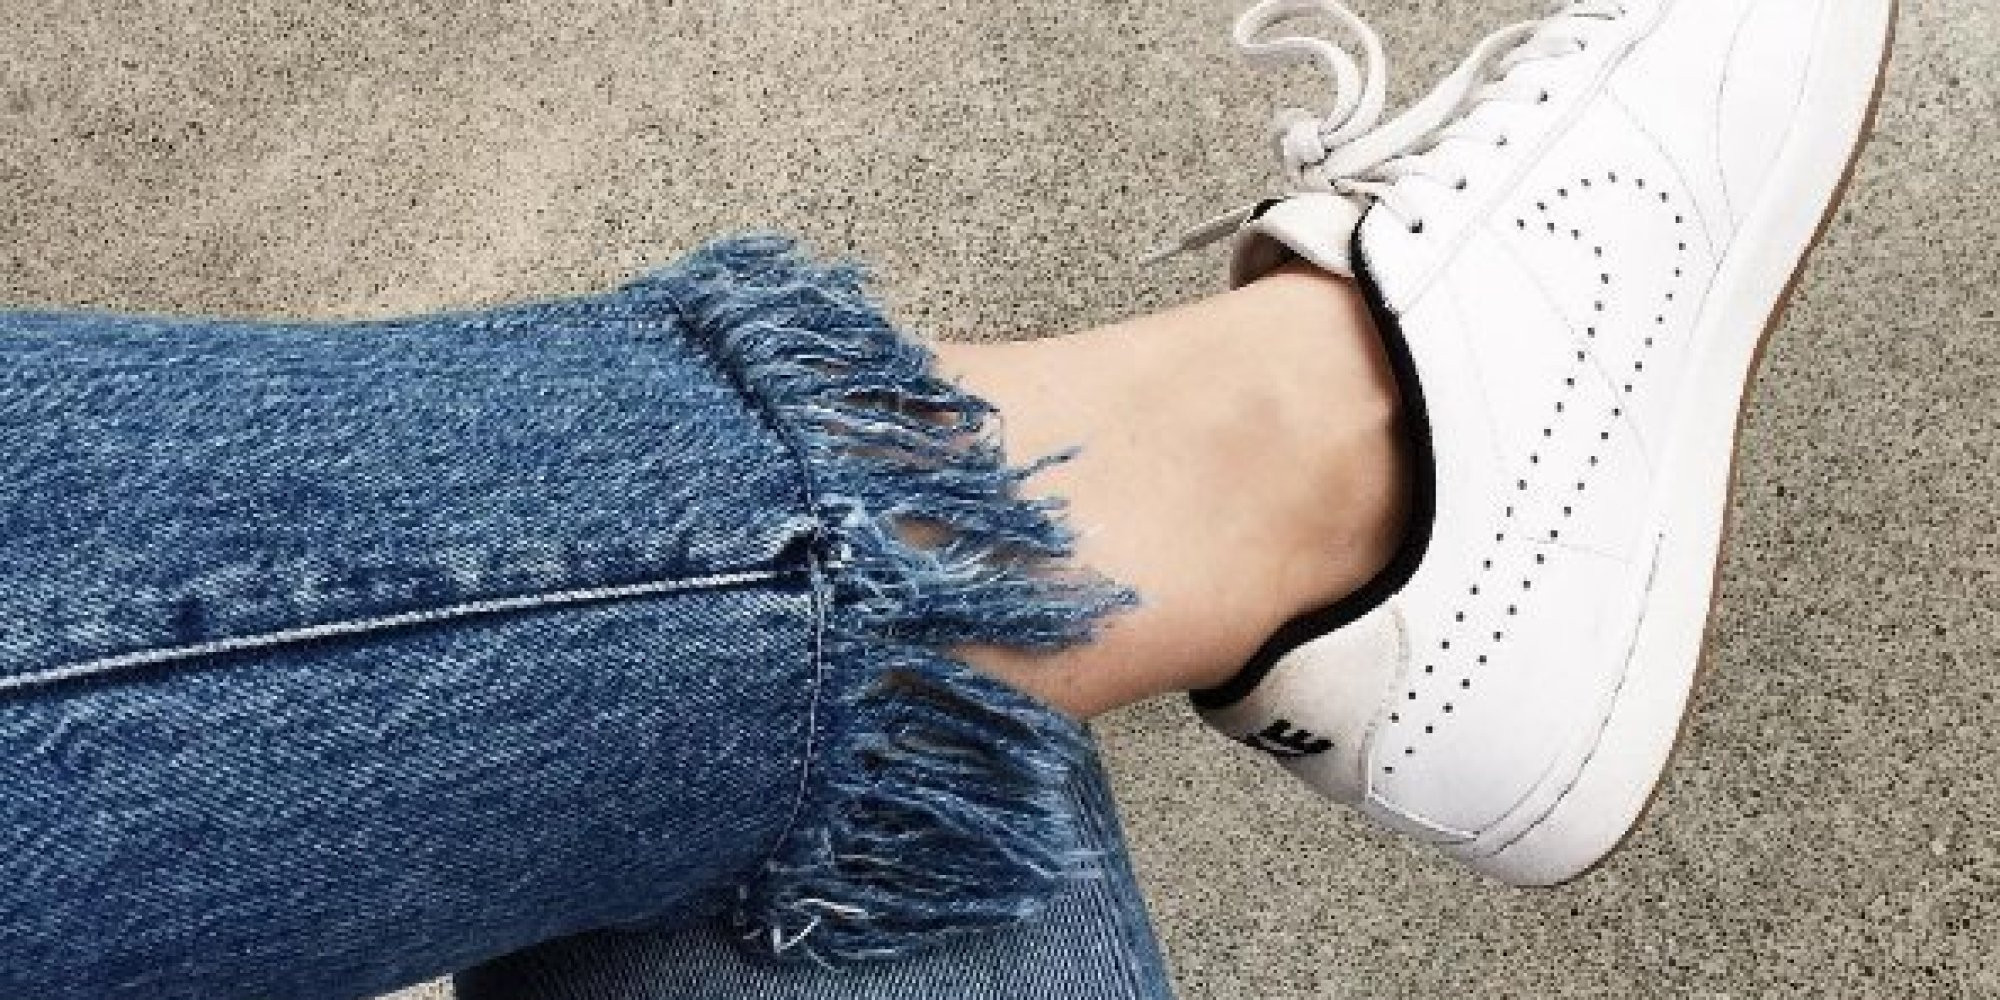 Diy Jeans  DIY Frayed Jeans How To Fray Your Denim Into Fringed Hem